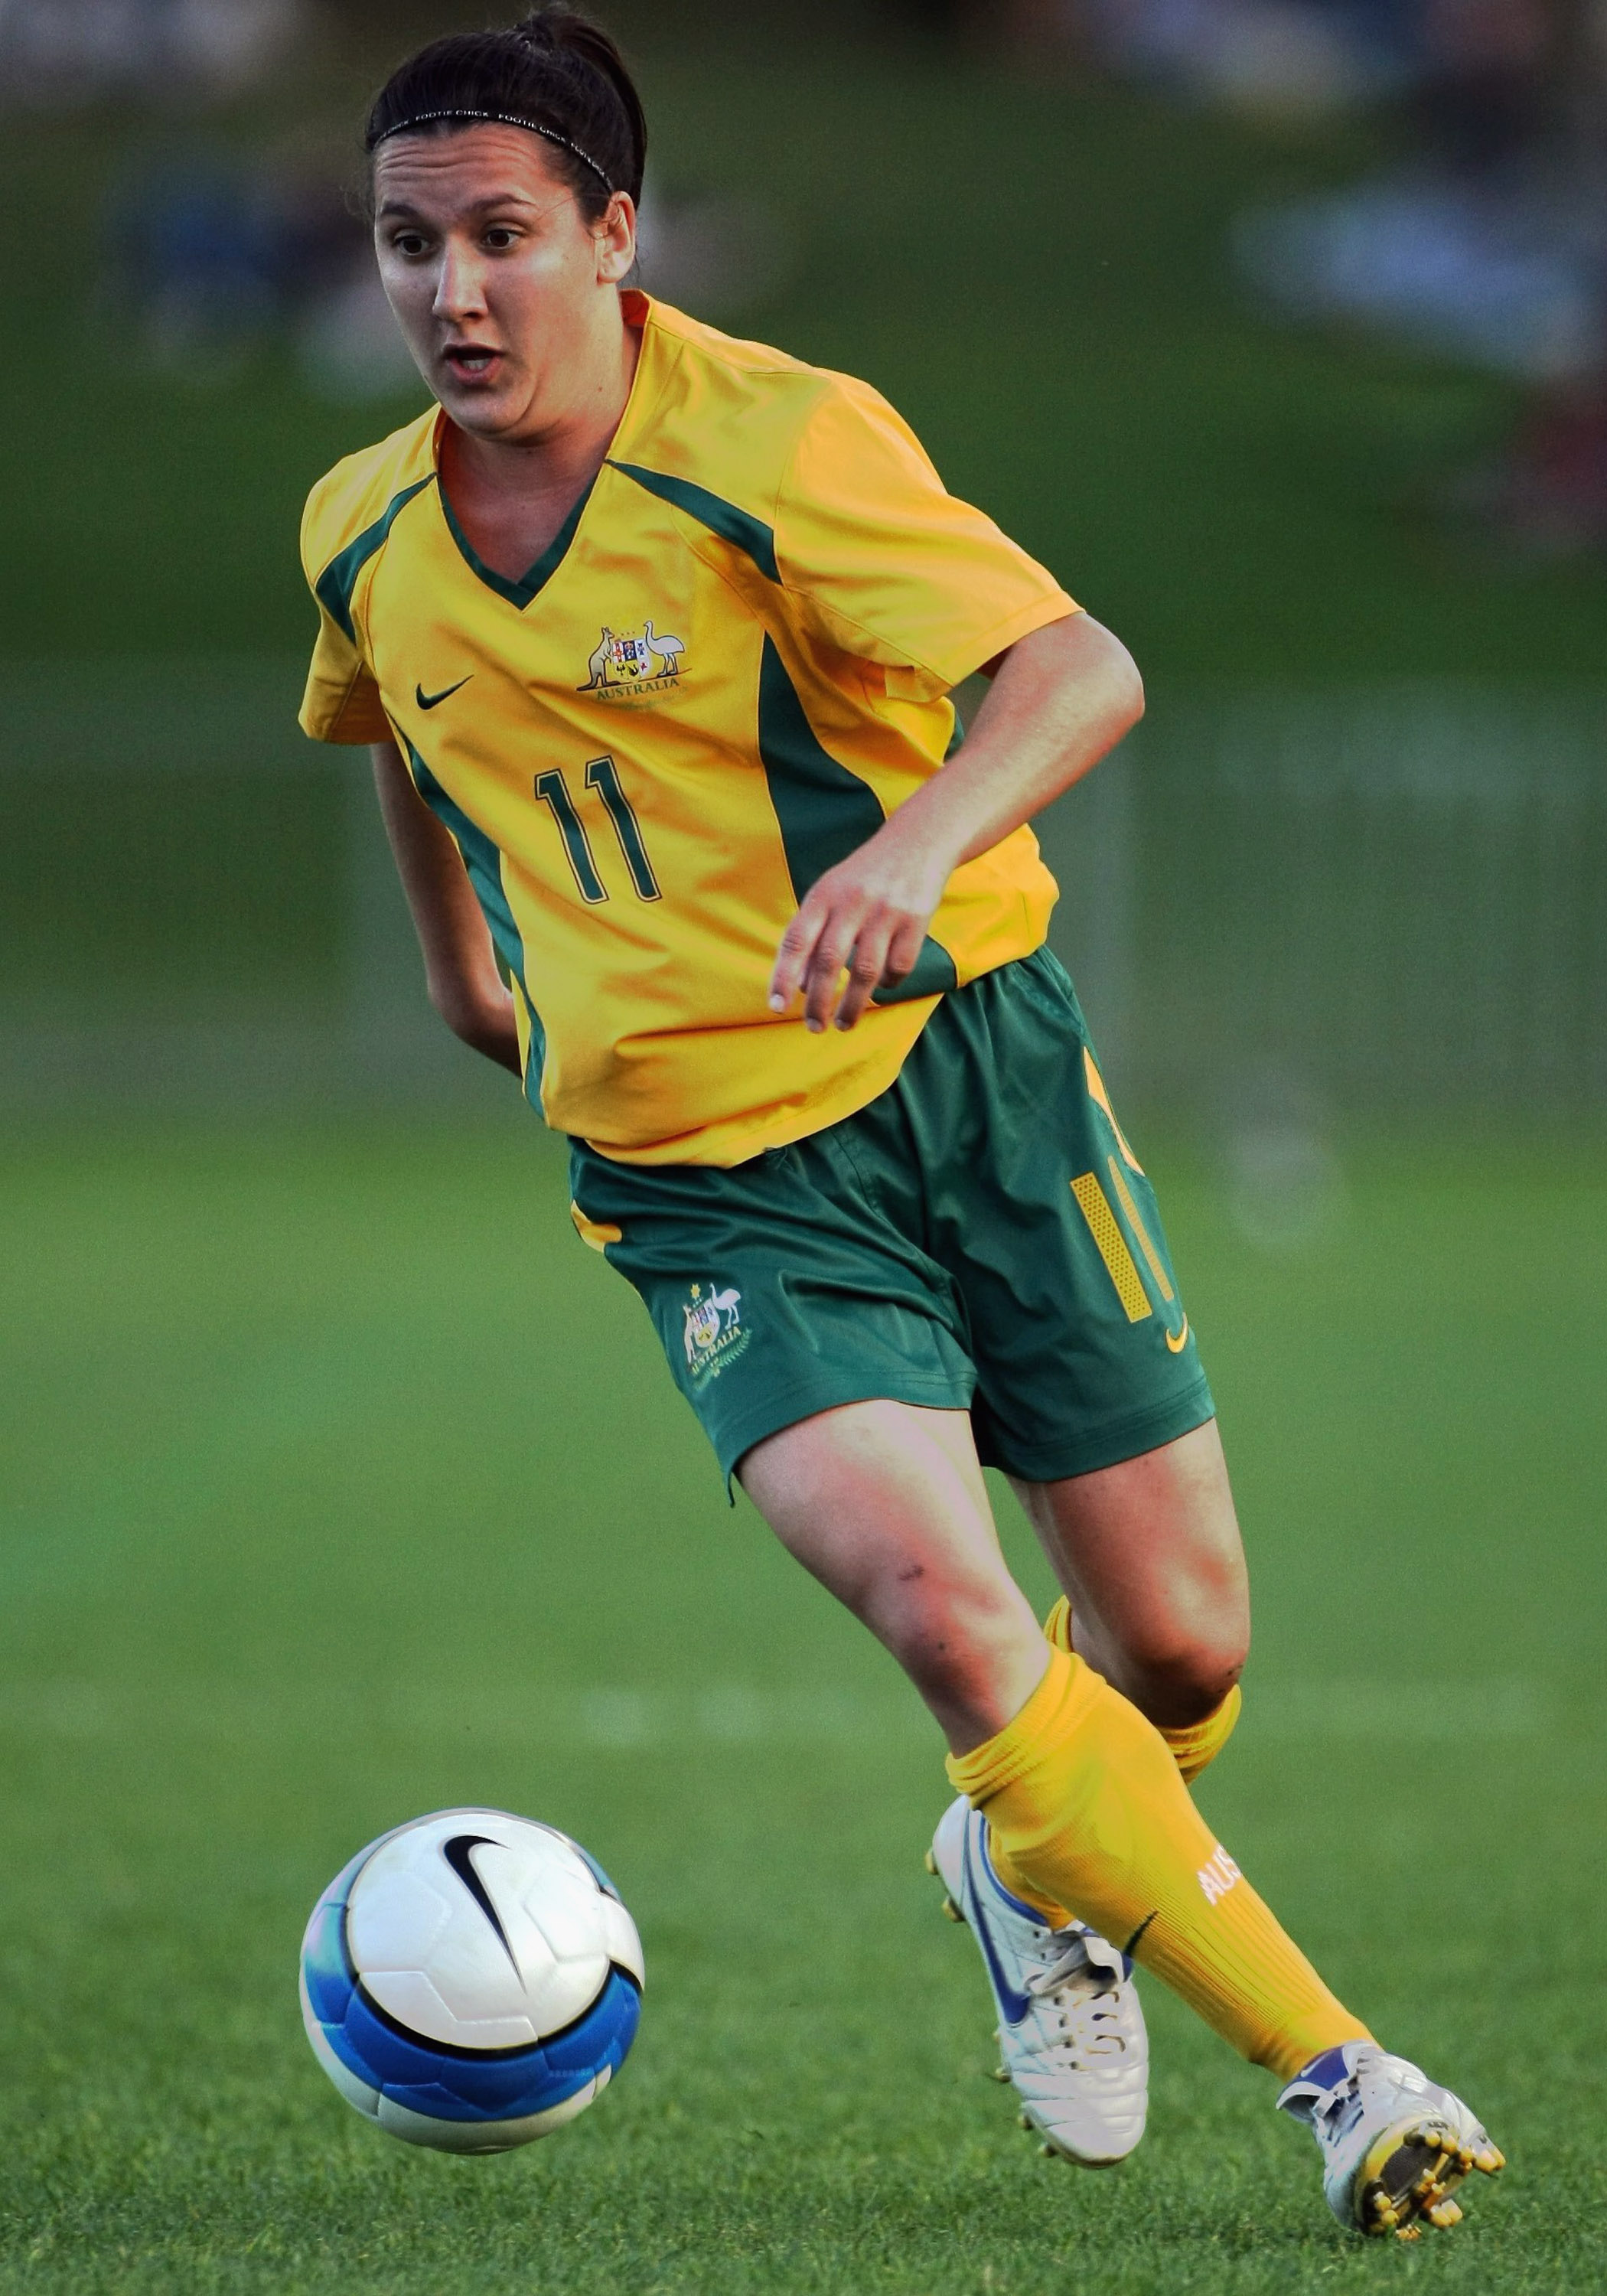 COFFS HARBOUR, AUSTRALIA - JUNE 10: Lisa De Vanna of Australia in action during the Olympic Qualification match between Australia and North Korea at BCU International Stadium on June 10, 2007 in Coffs Harbour, Australia.  (Photo by Robert Cianflone/Getty